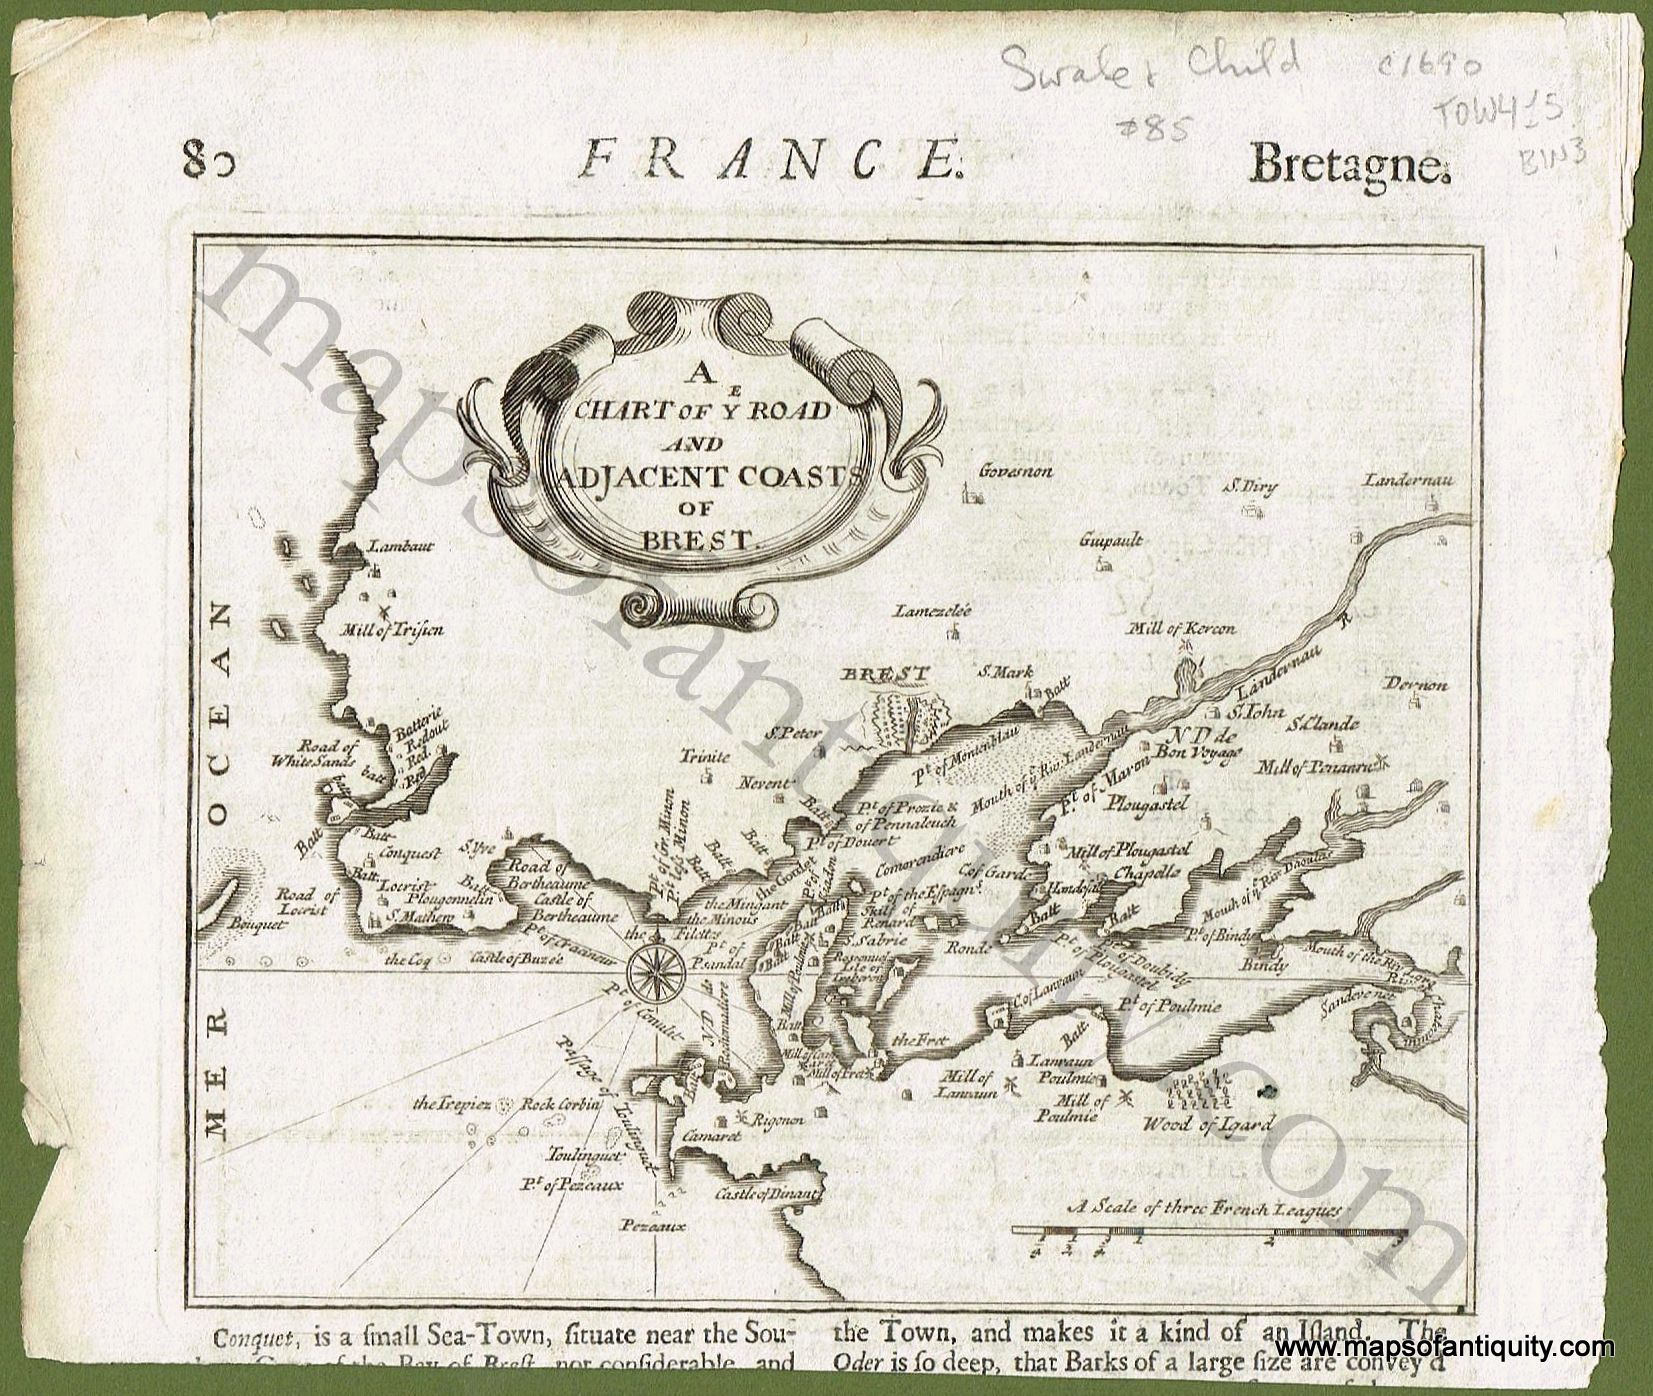 Antique C 1690 Map Of Brest France By Swale And Child Available